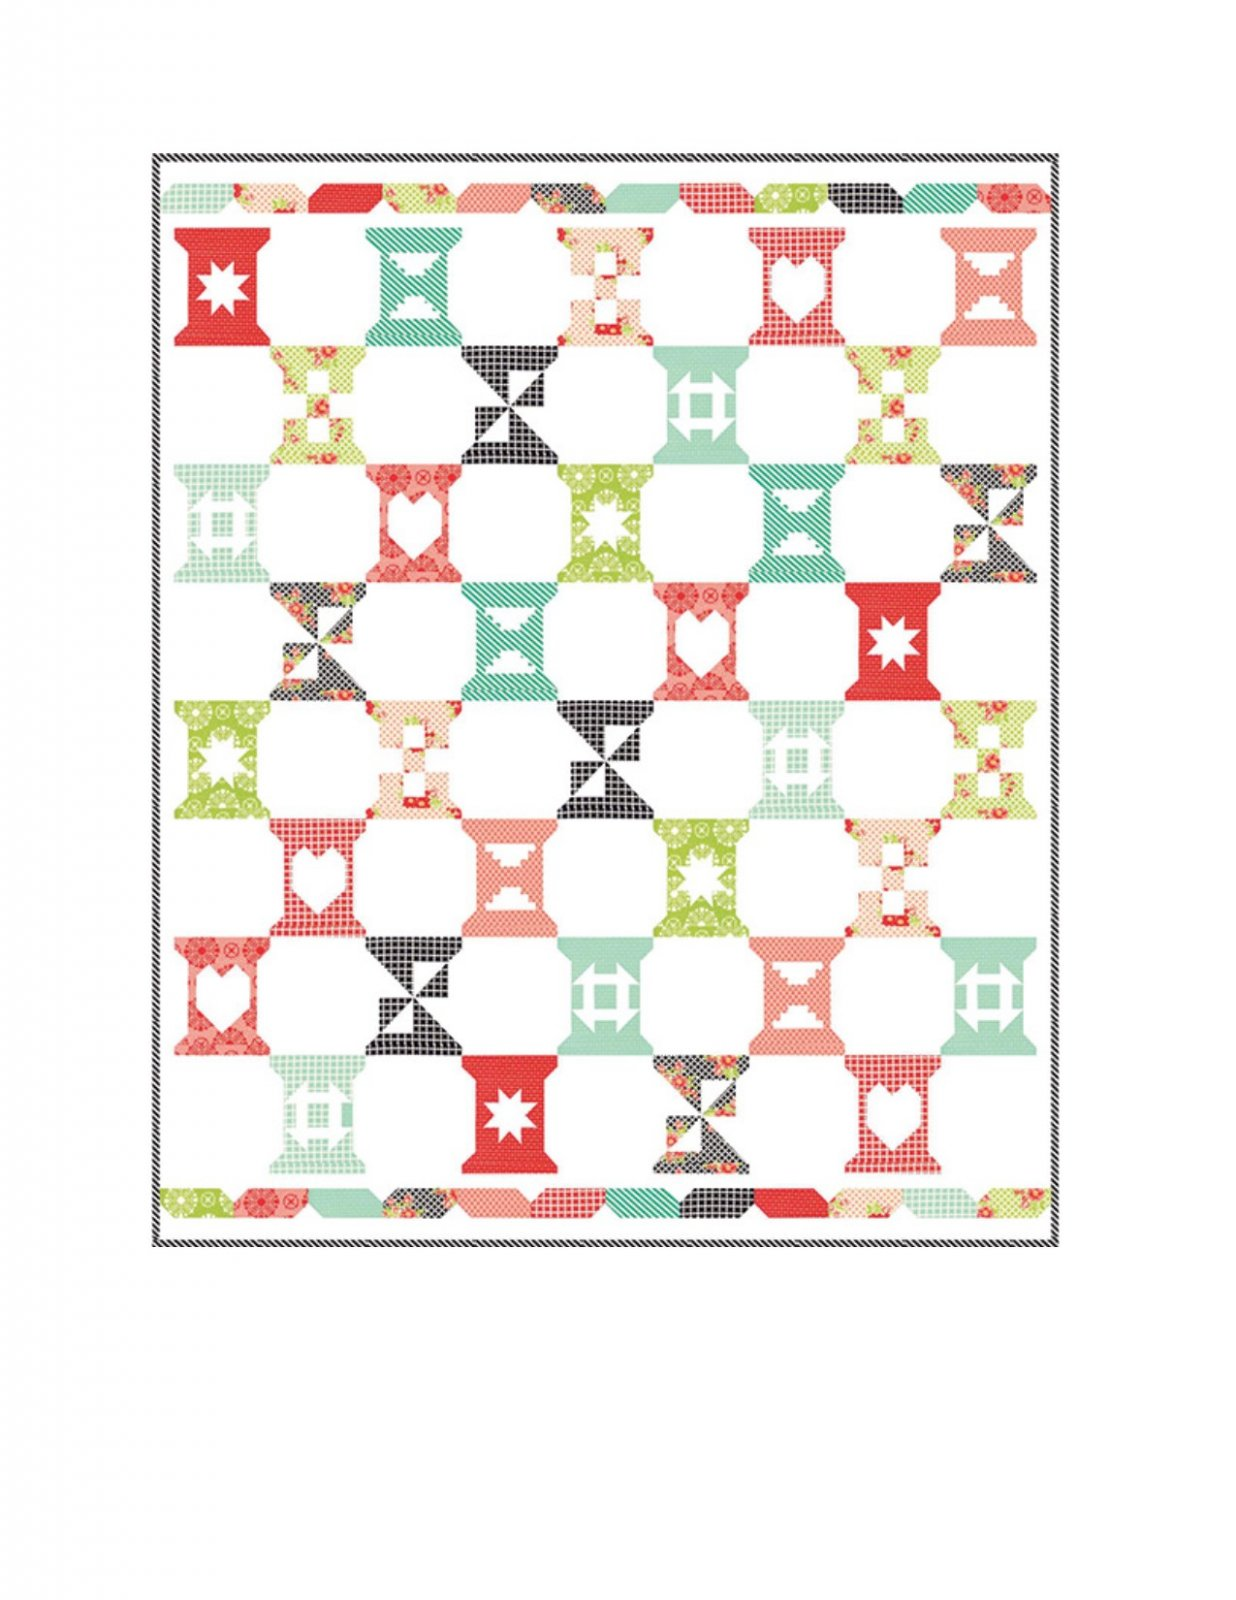 Spool Sampler Quilt Pattern designed by Bonnie Olaveson of Cotton Way